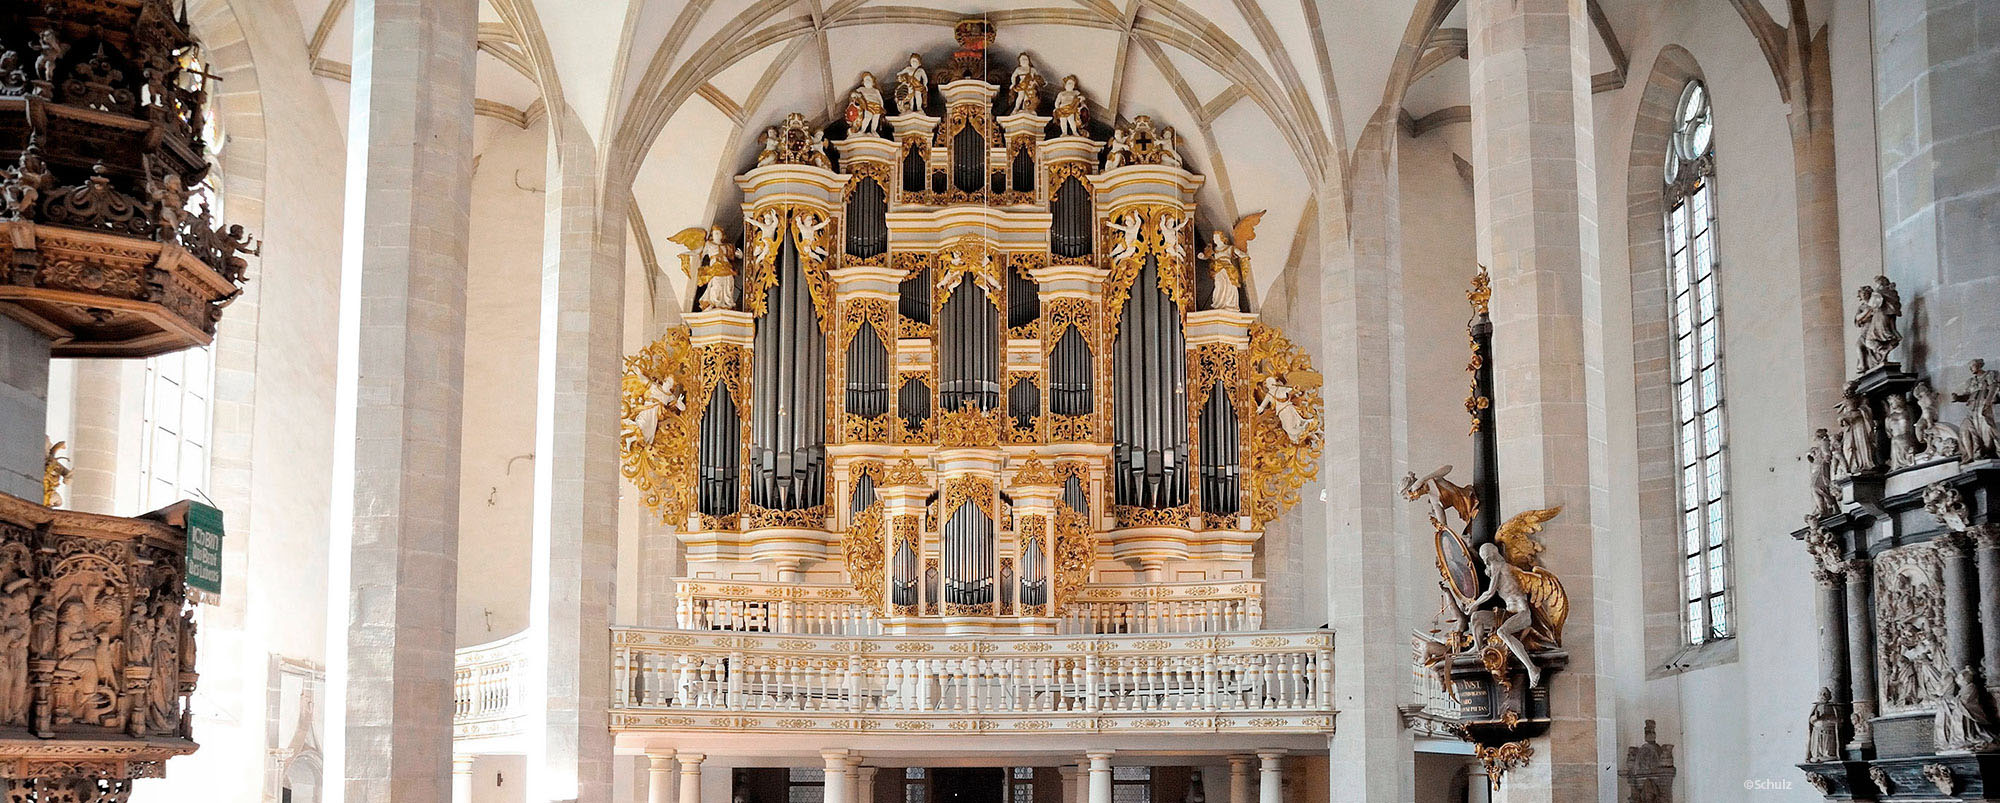 Ladegast-Orgel